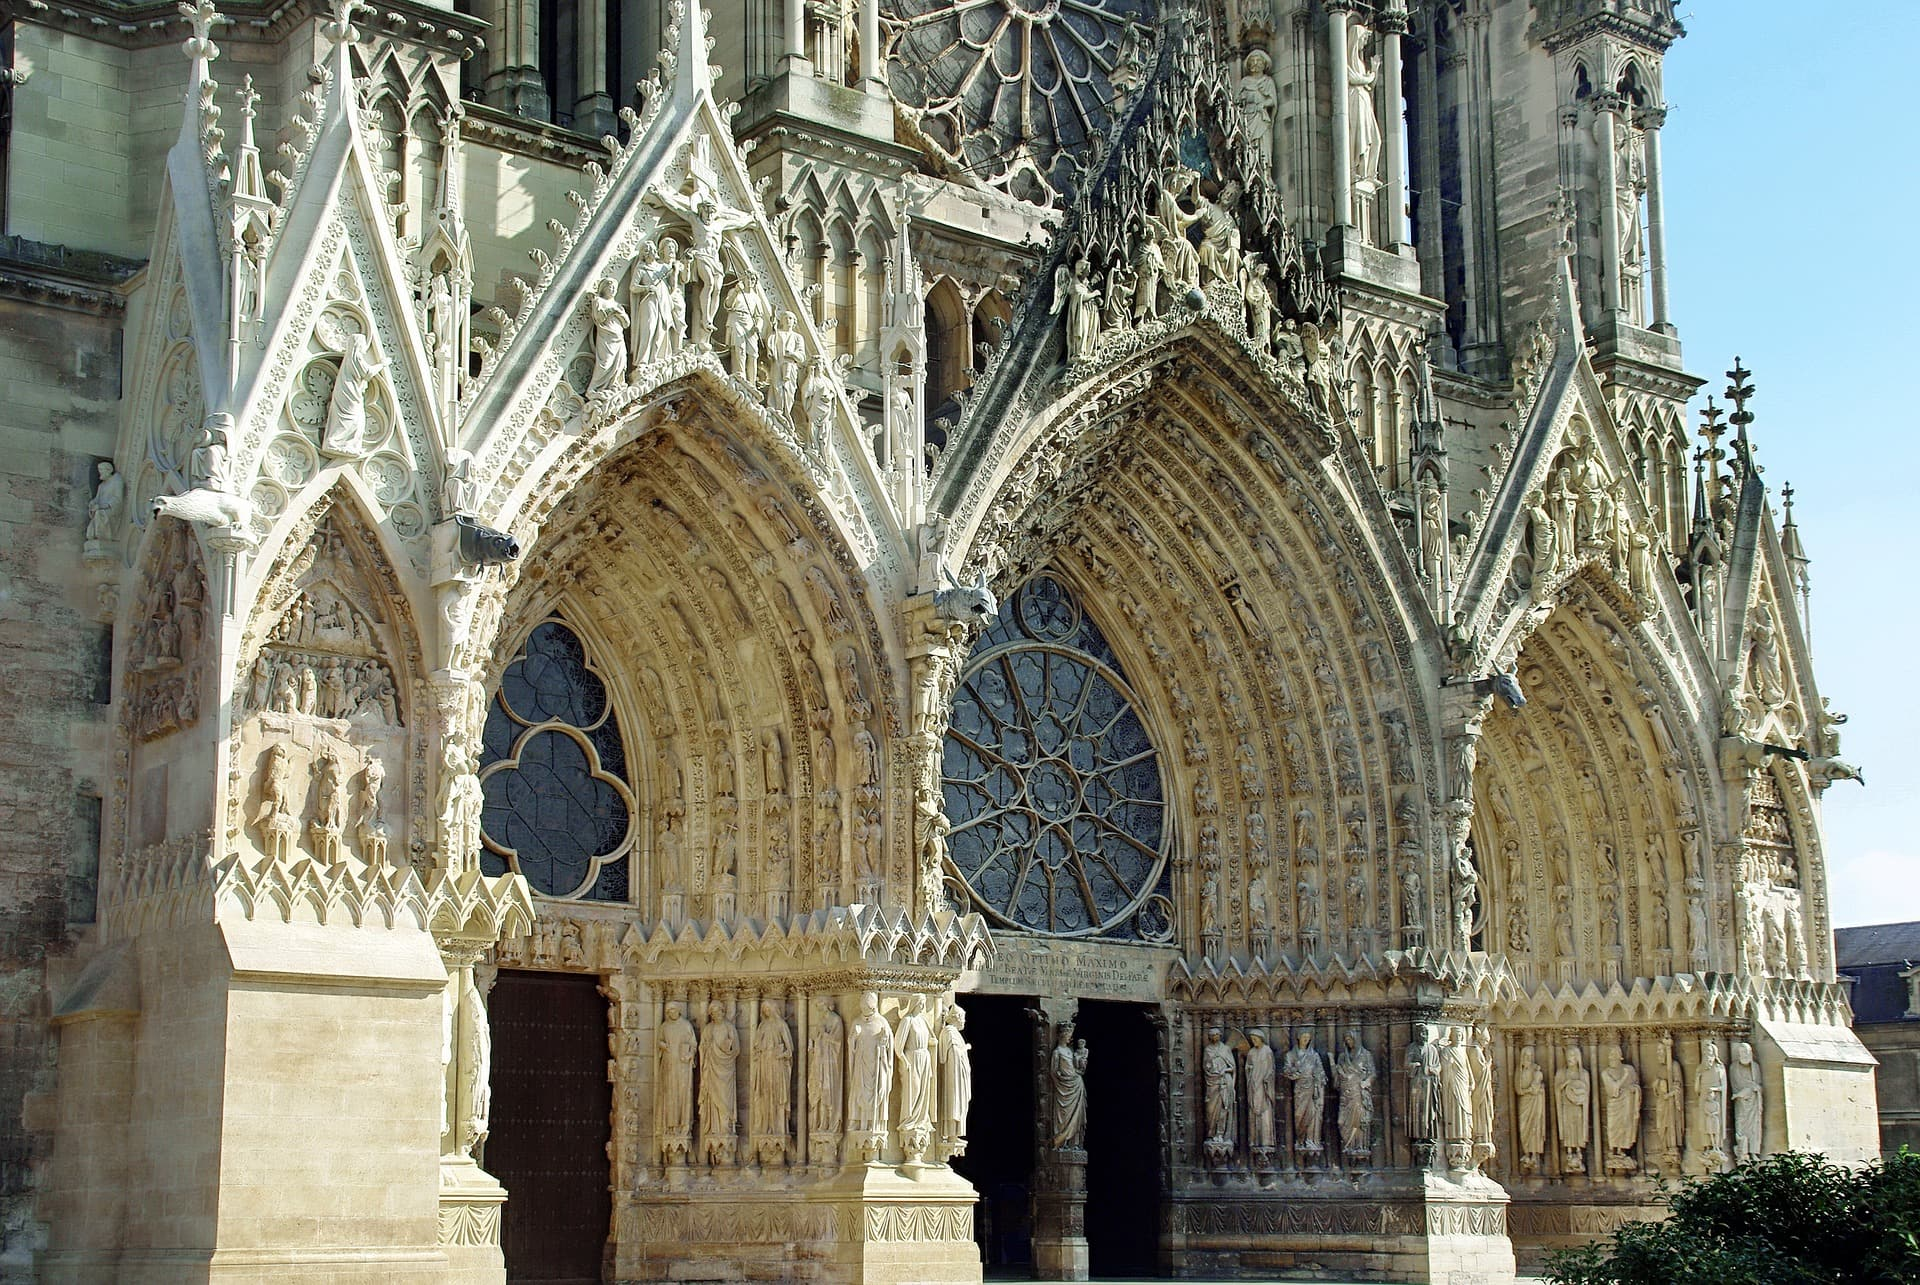 Day 2 - Reims, the capital of Champagn